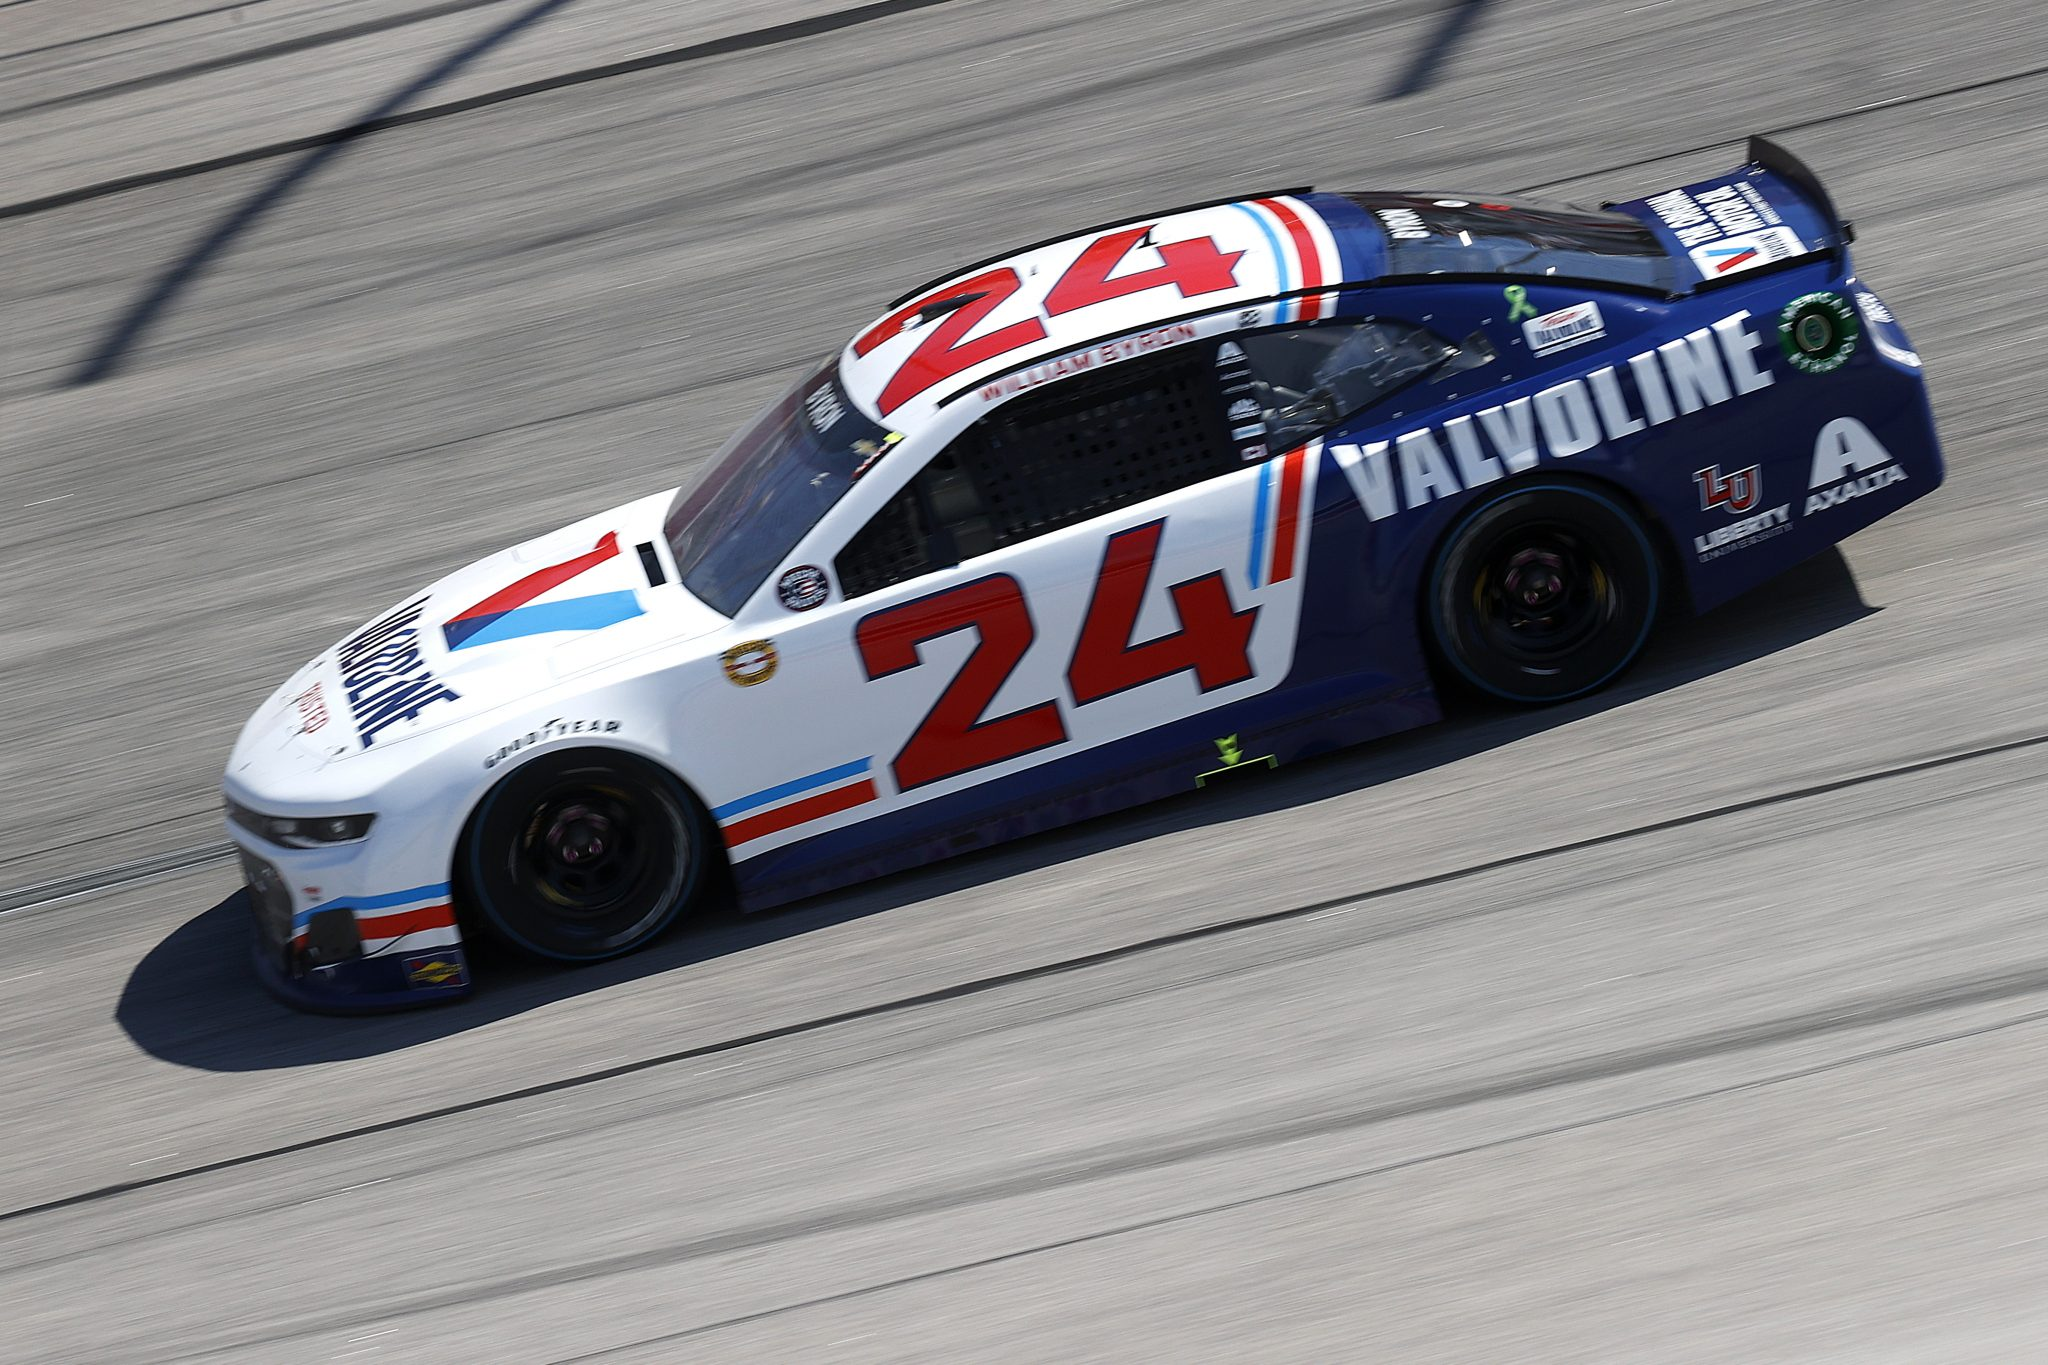 DARLINGTON, SOUTH CAROLINA - MAY 09: William Byron, driver of the #24 Valvoline Throwback Chevrolet, drives during the NASCAR Cup Series Goodyear 400 at Darlington Raceway on May 09, 2021 in Darlington, South Carolina. (Photo by Chris Graythen/Getty Images) | Getty Images